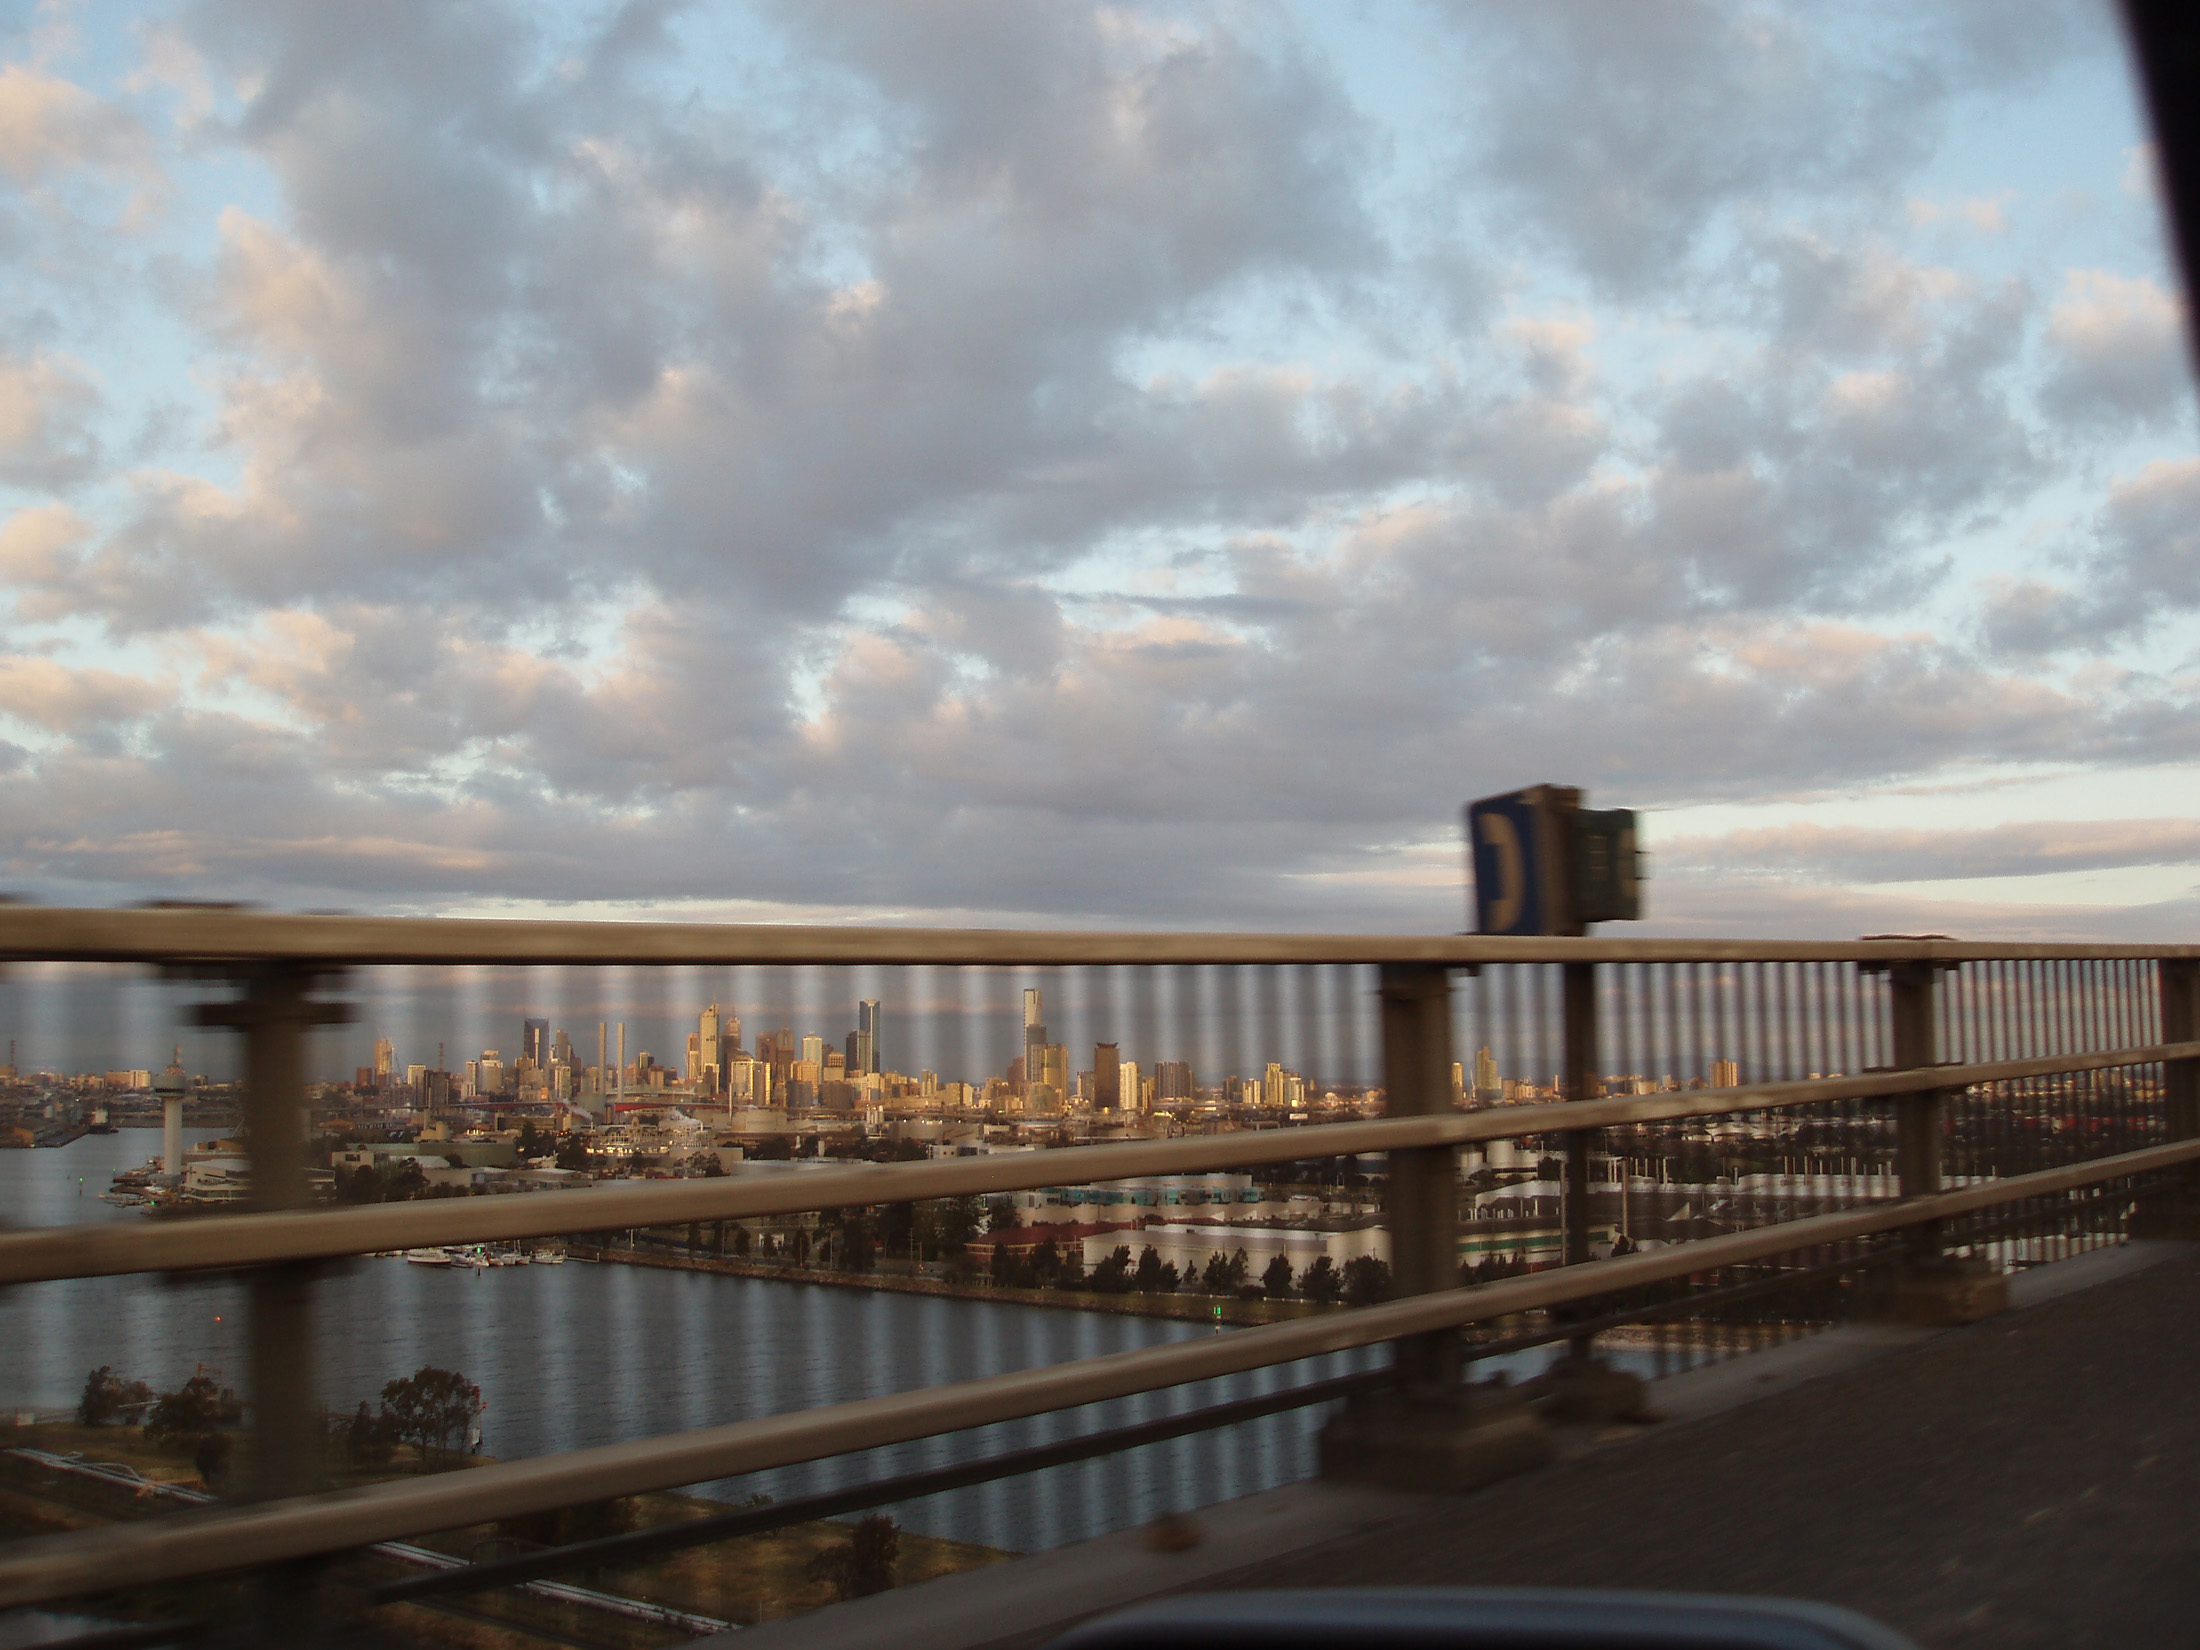 View from Car Traveling Across Bridge into City of Melbourne, Australia at Dusk